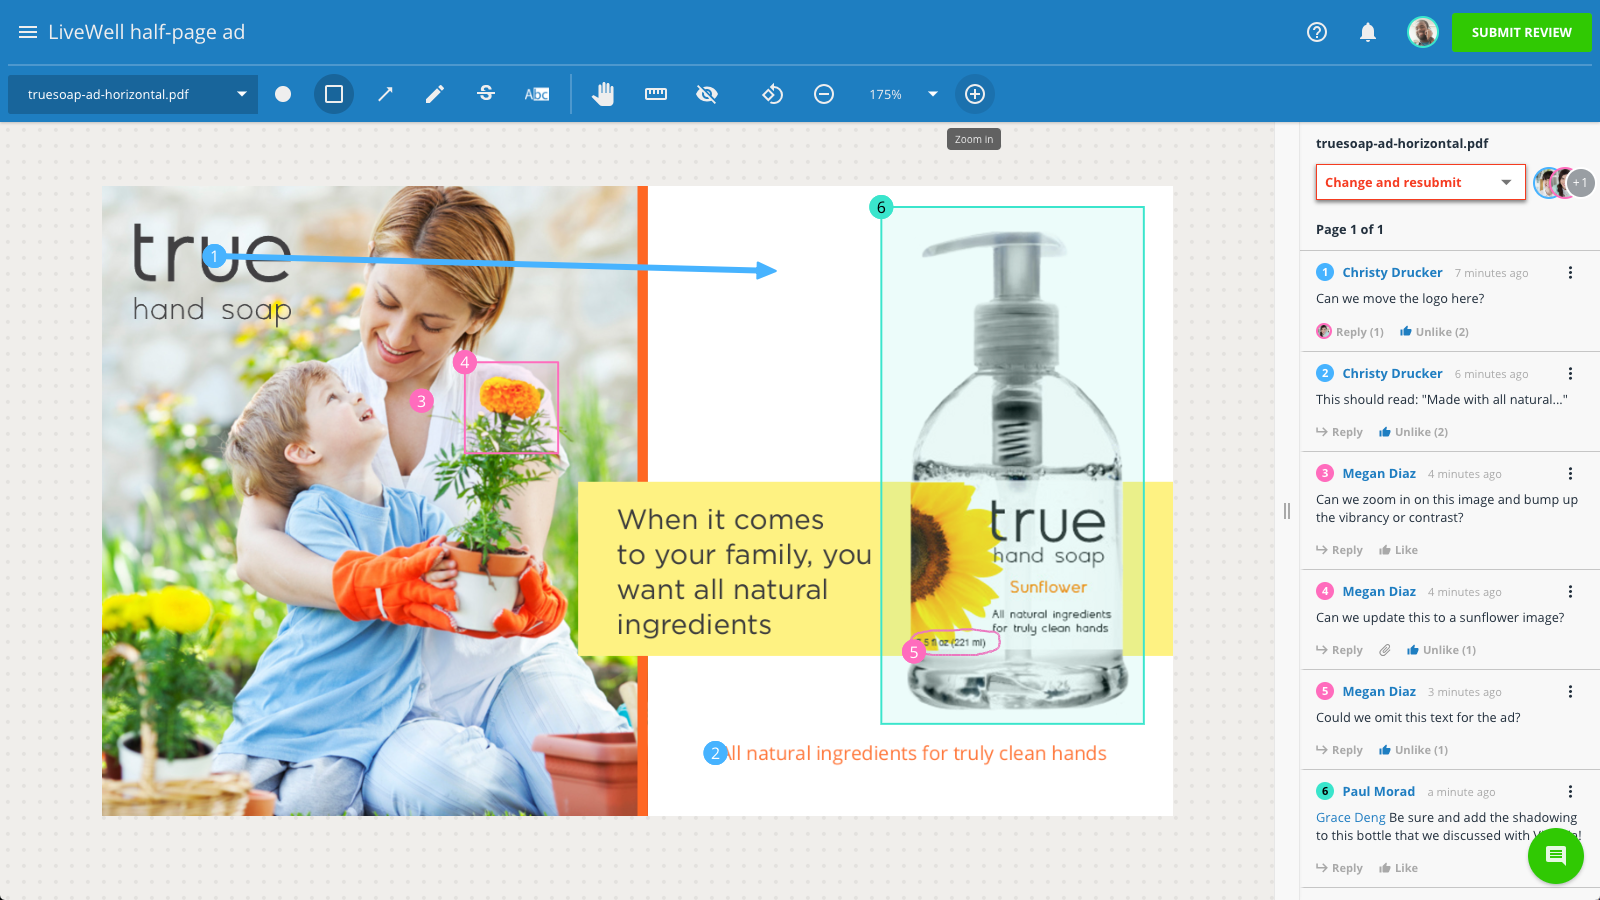 The Review + Approval portal allows you to easily mark up images, PDFs, videos, website, email & more. Draw, annotate, highlight, and comment to share feedback and collaborate. Reviewers can compare versions side-by-side and set their approval status.